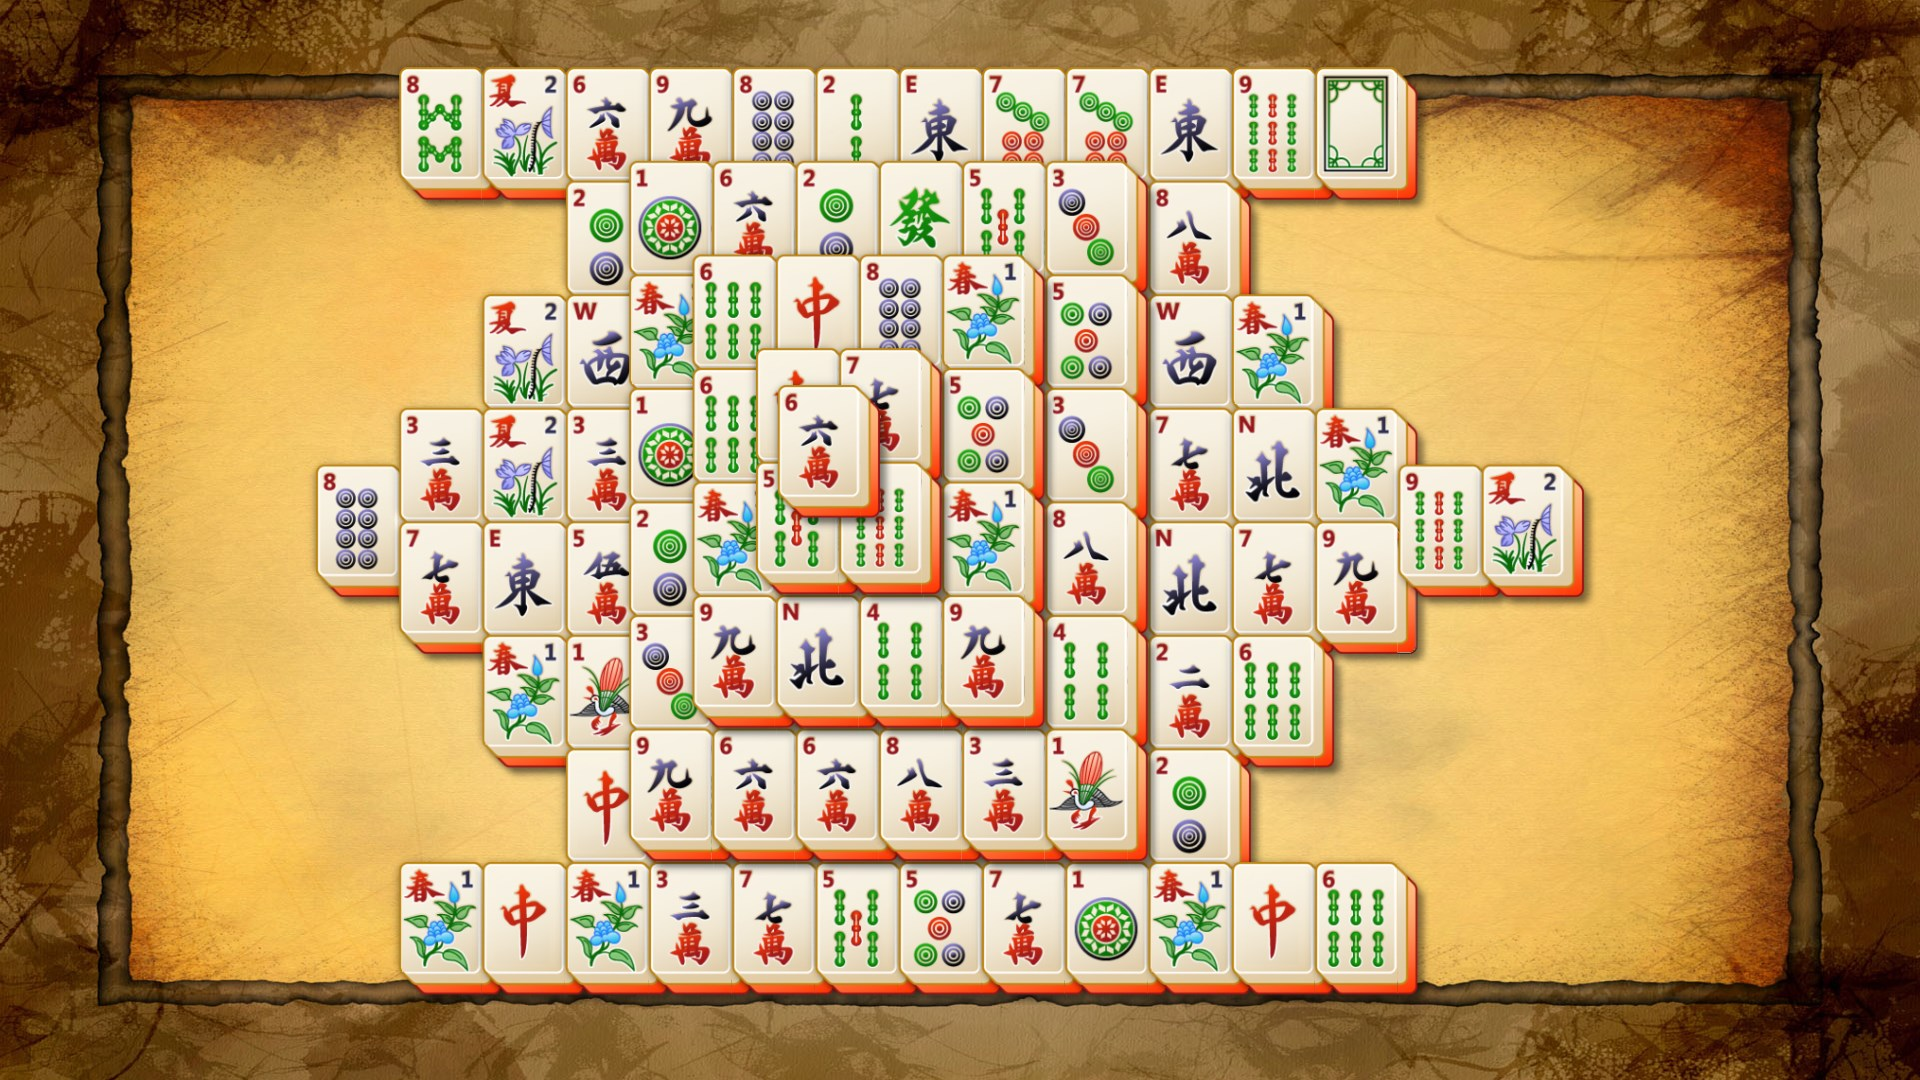 King of mahjong solitaire: king of tiles for android download.